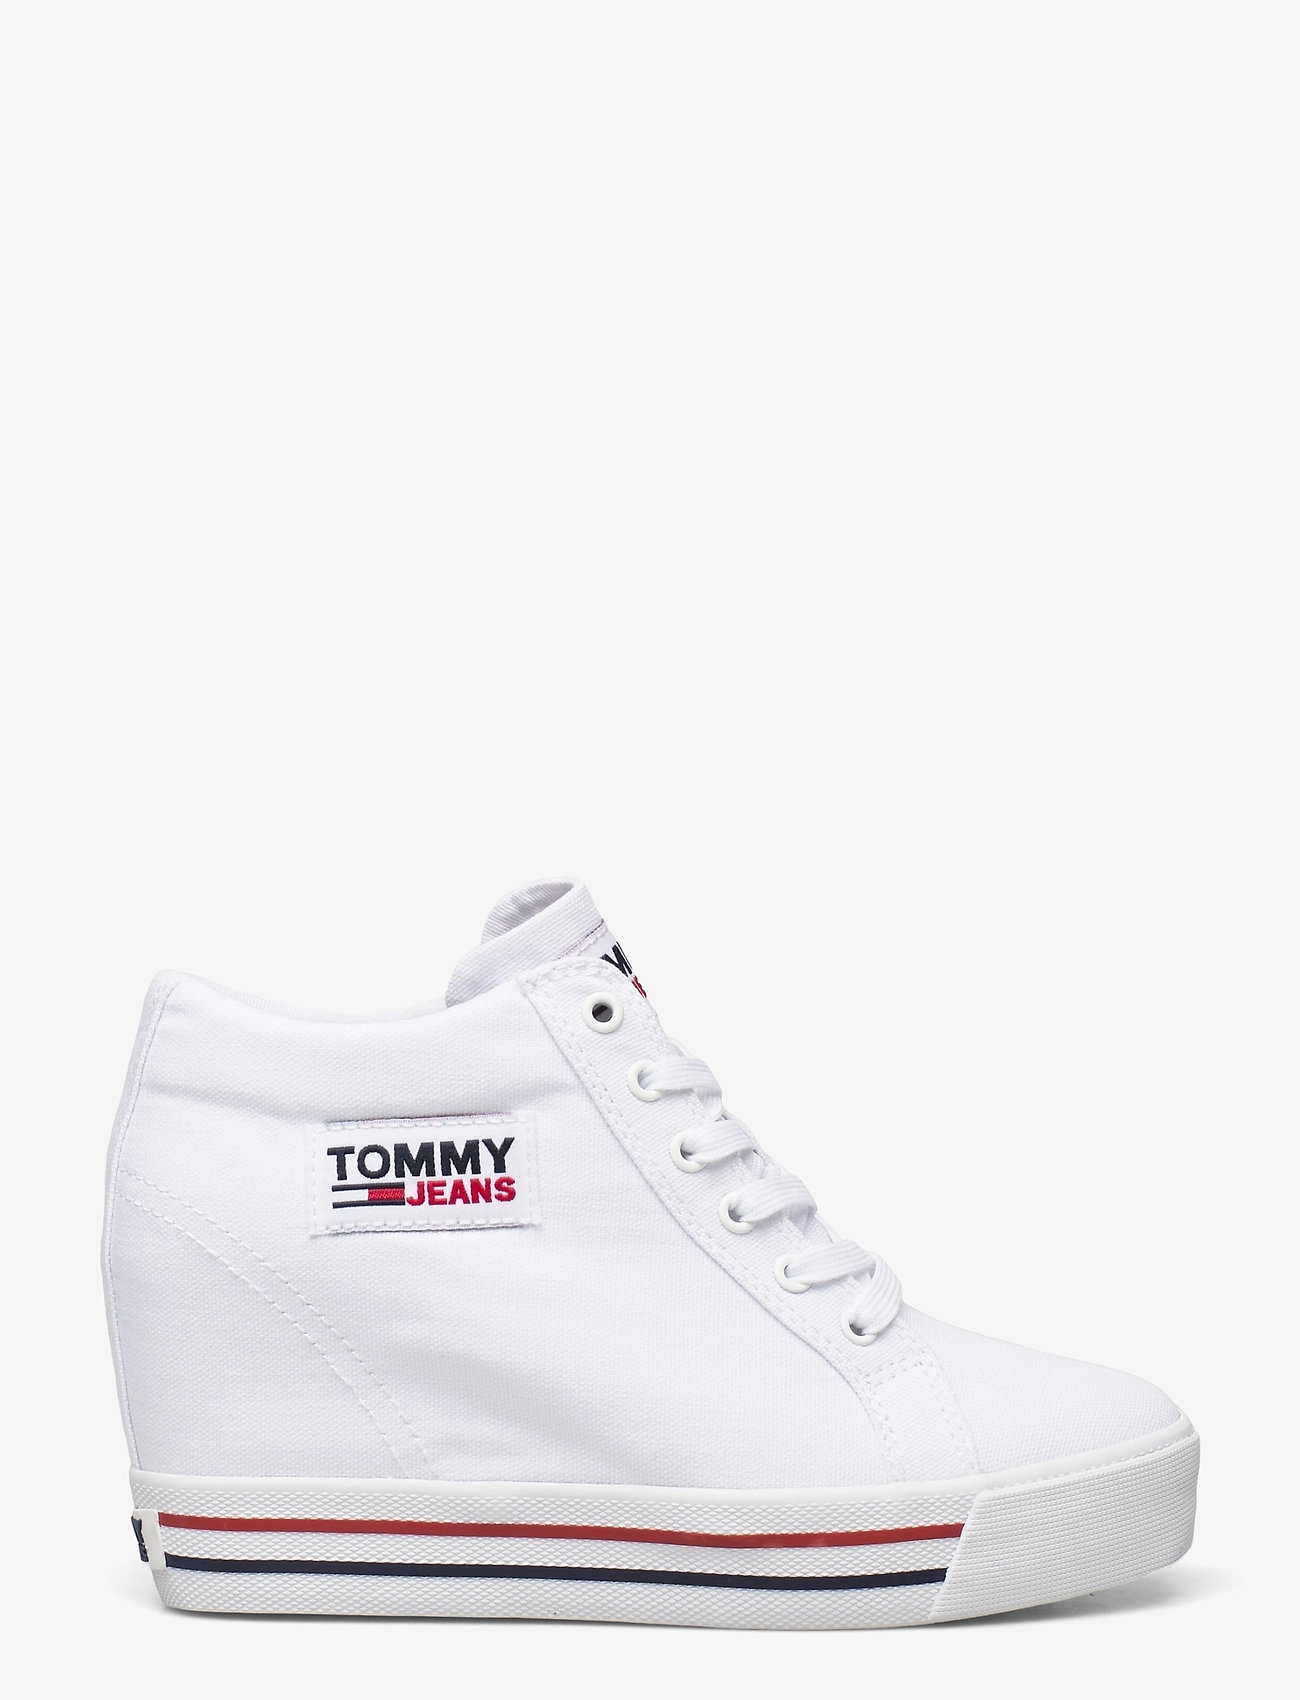 Tommy Hilfiger - TOMMY JEANS WEDGE SNEAKER - hoge sneakers - white - 1